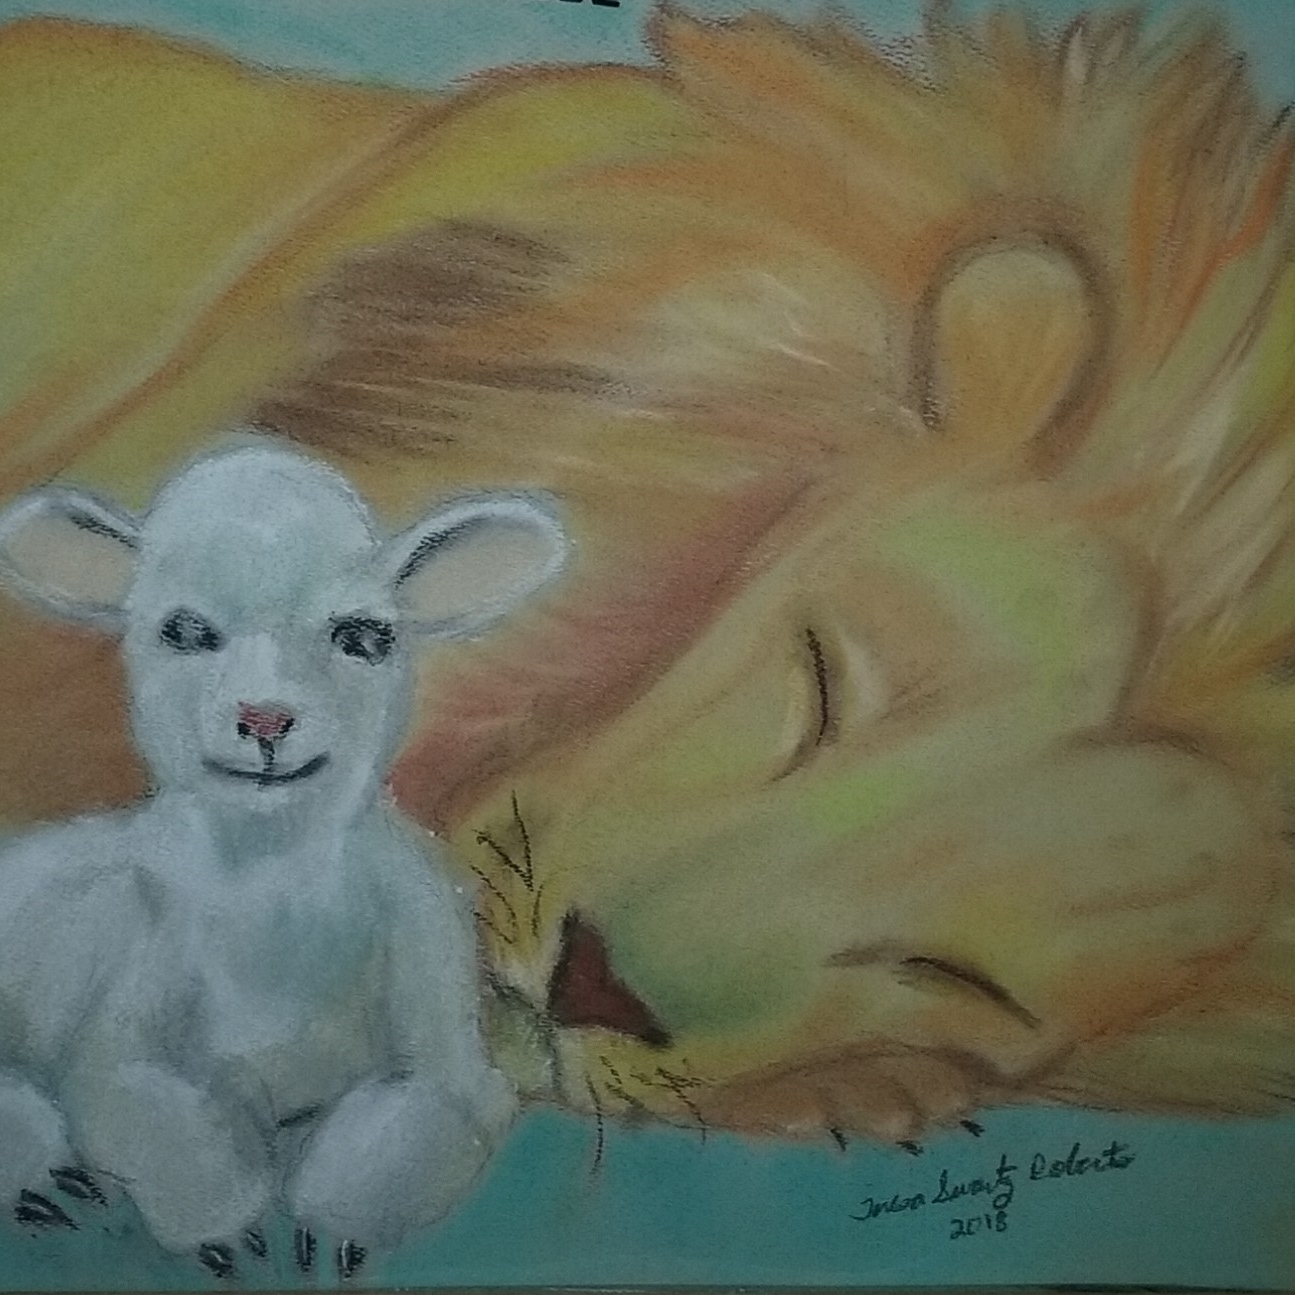 I used pastels to create this painting inspired by a greeting card.